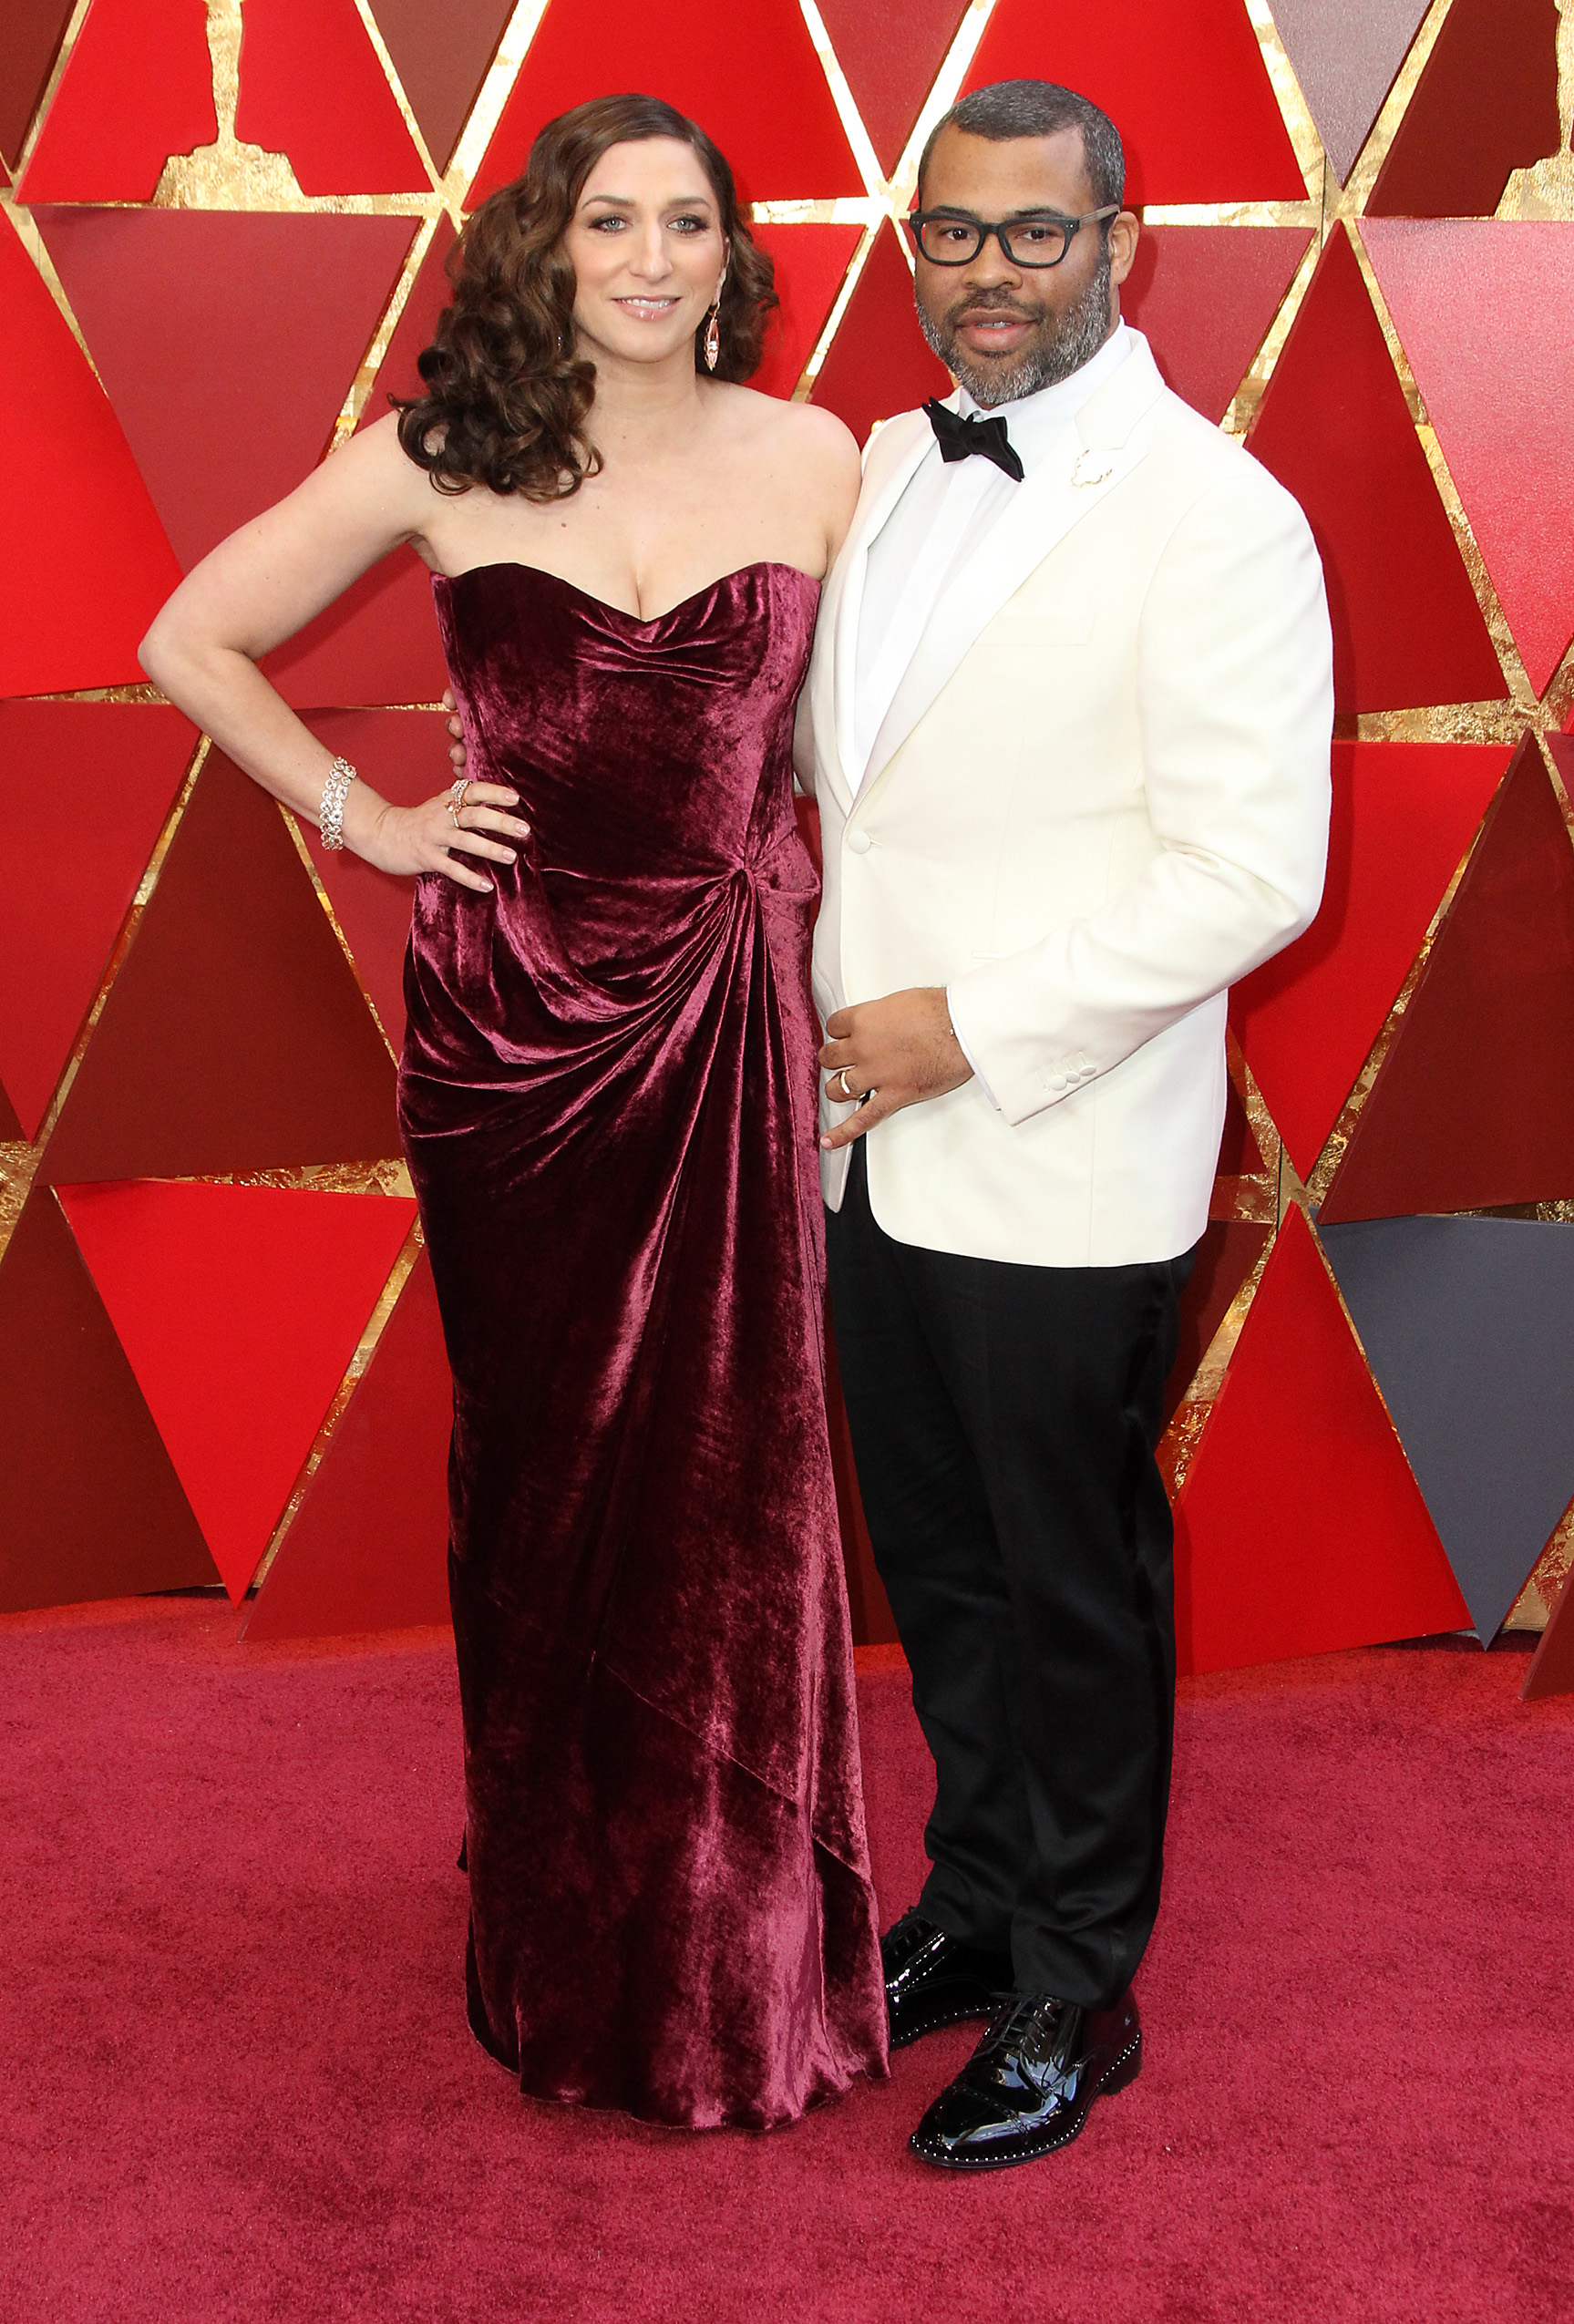 Jordan Peele and Chelsea Peretti{&amp;nbsp;}arrive at the 90th Annual Academy Awards (Oscars) held at the Dolby Theater in Hollywood, California. (Image: Adriana M. Barraza/WENN.com)<p></p>